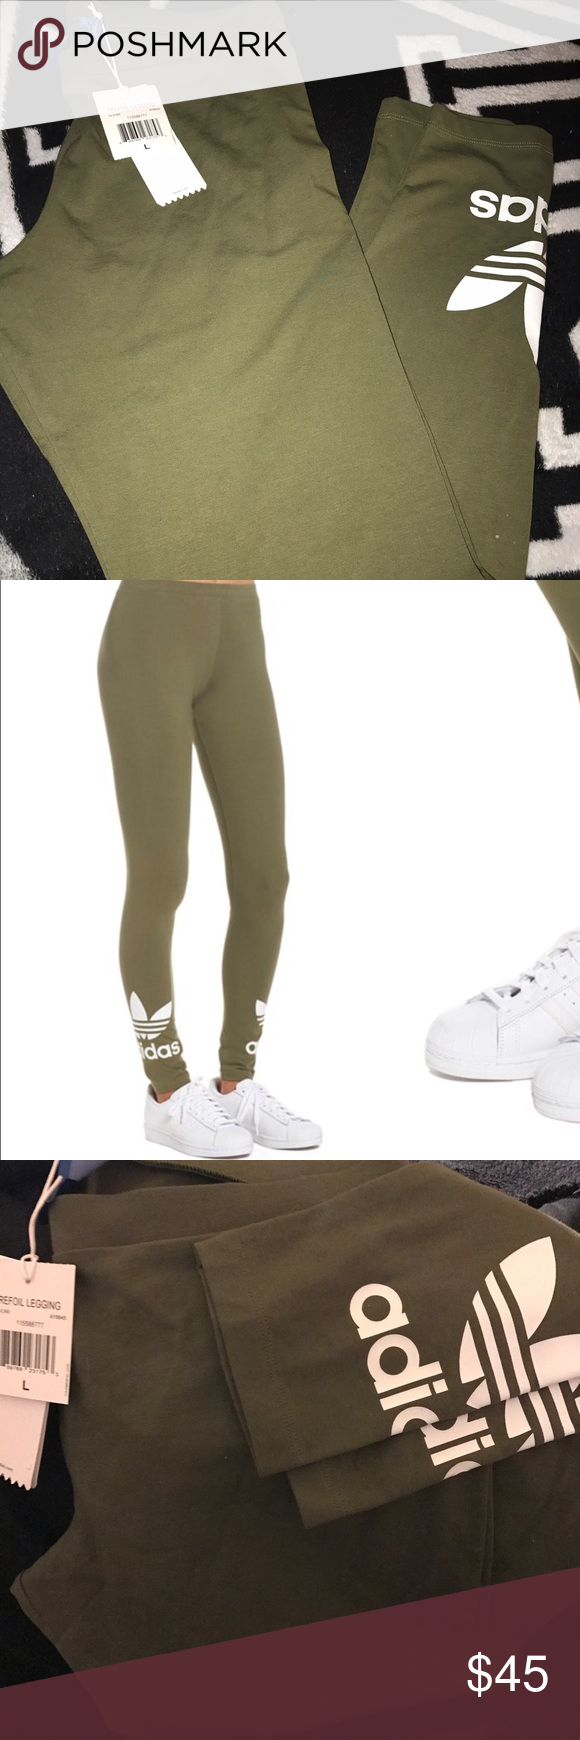 f09cdb47a3457 Adidas Olive Trefoil Leggings (L) Brand new. Selling because it's the wrong  size